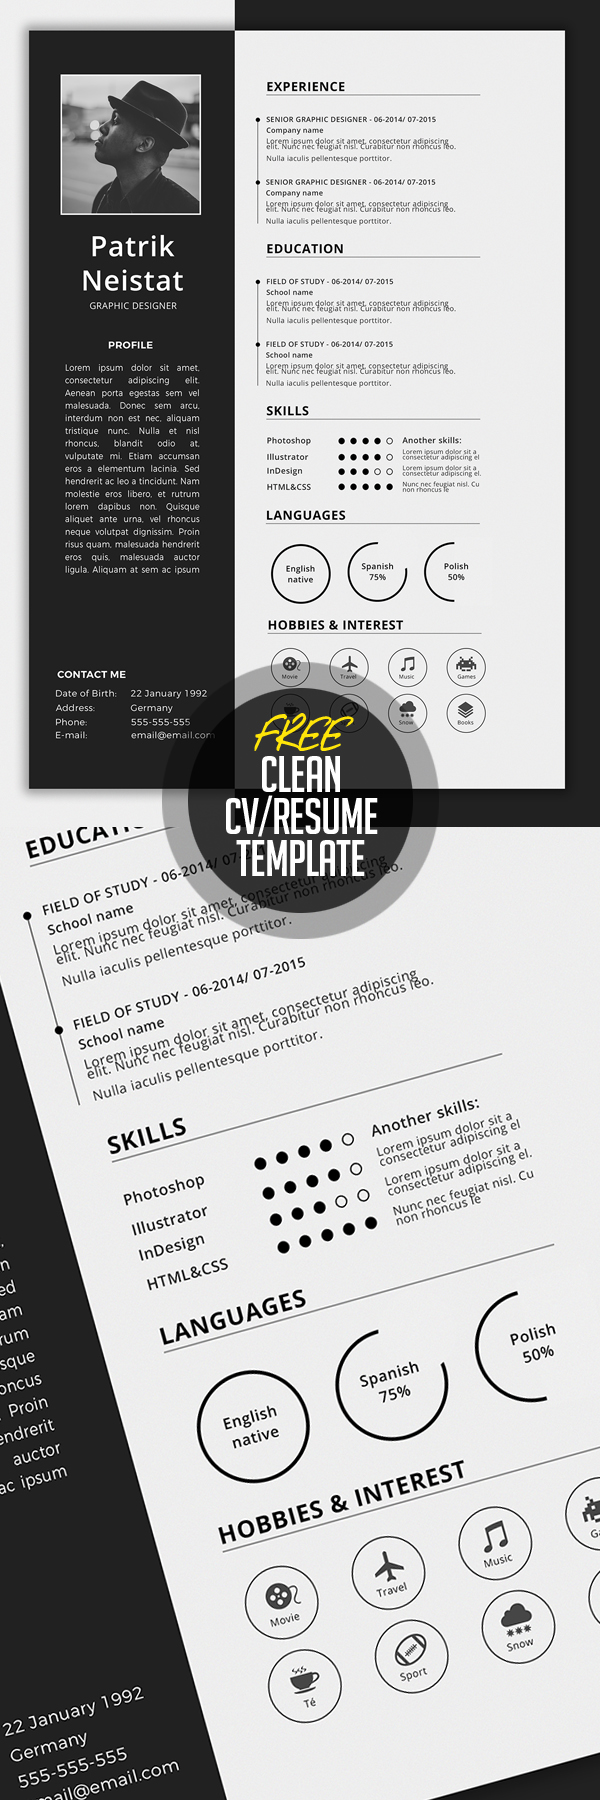 Free Resume Templates for 2017 | Freebies | Graphic Design Junction